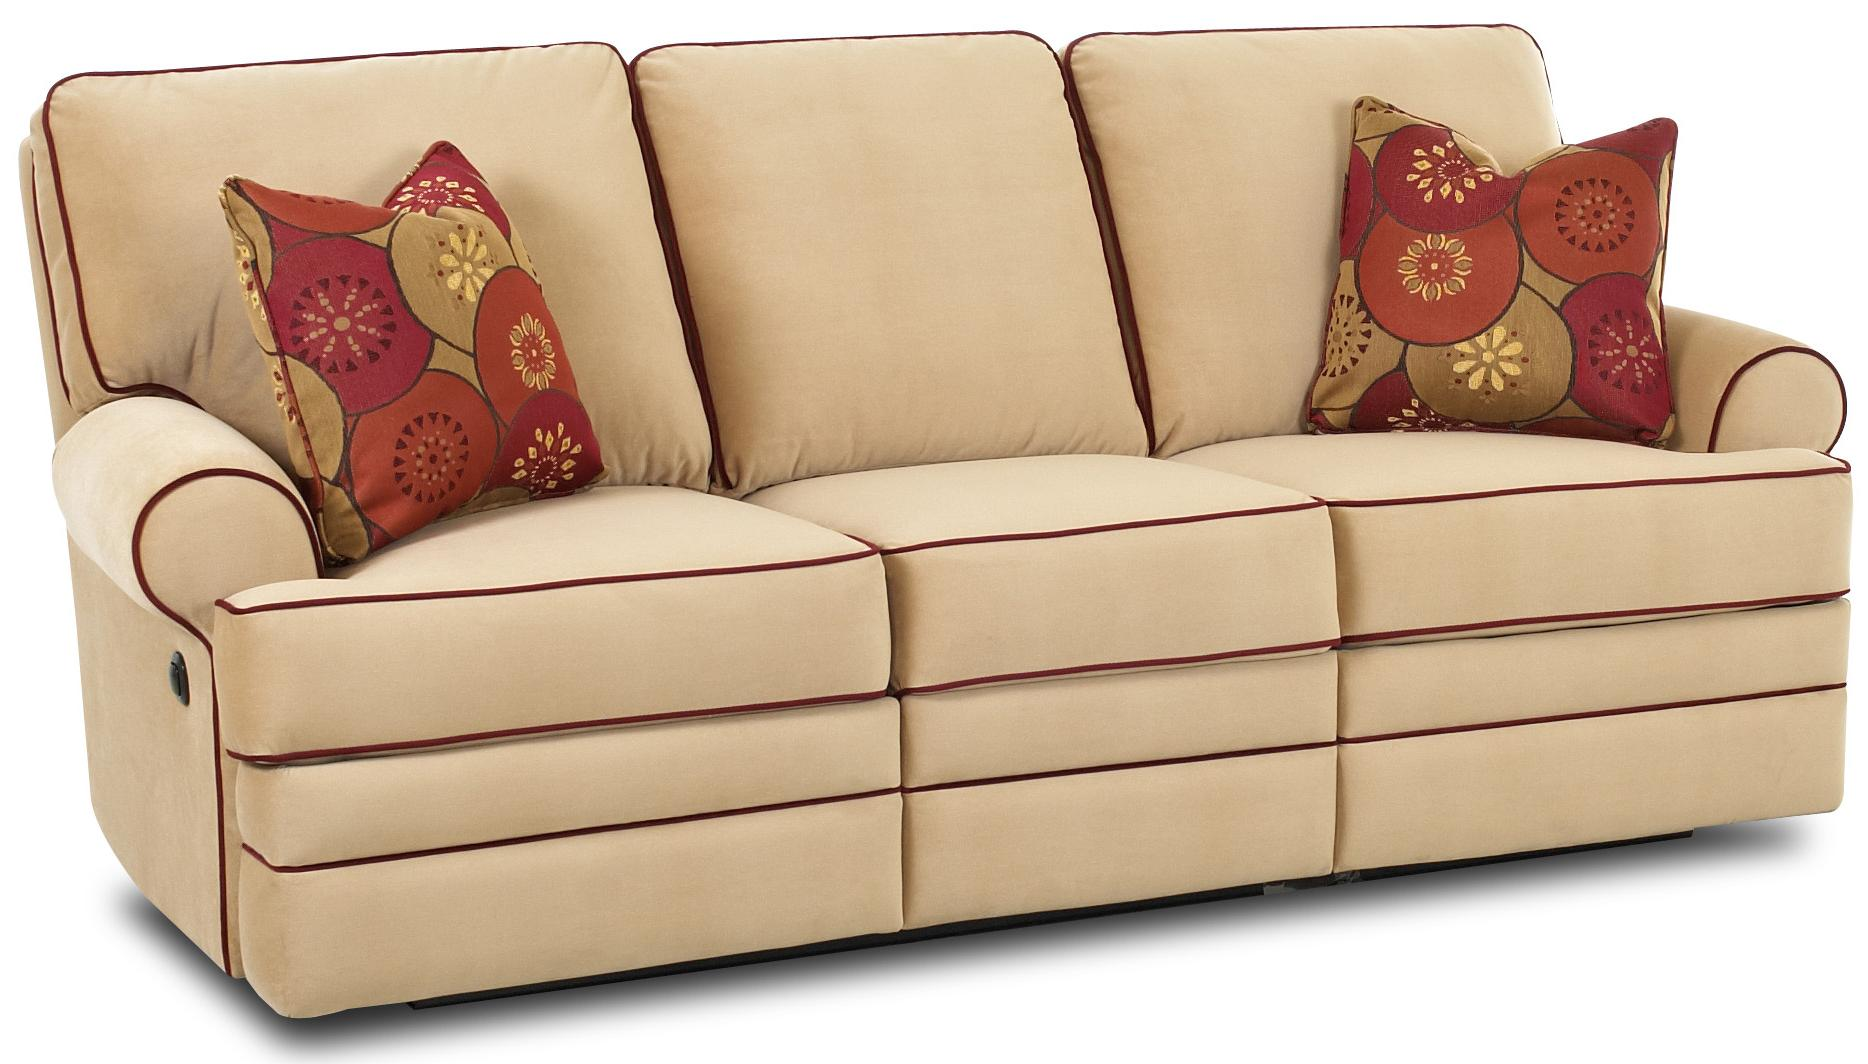 Power dual reclining sofa by klaussner wolf and gardiner Power reclining sofas and loveseats